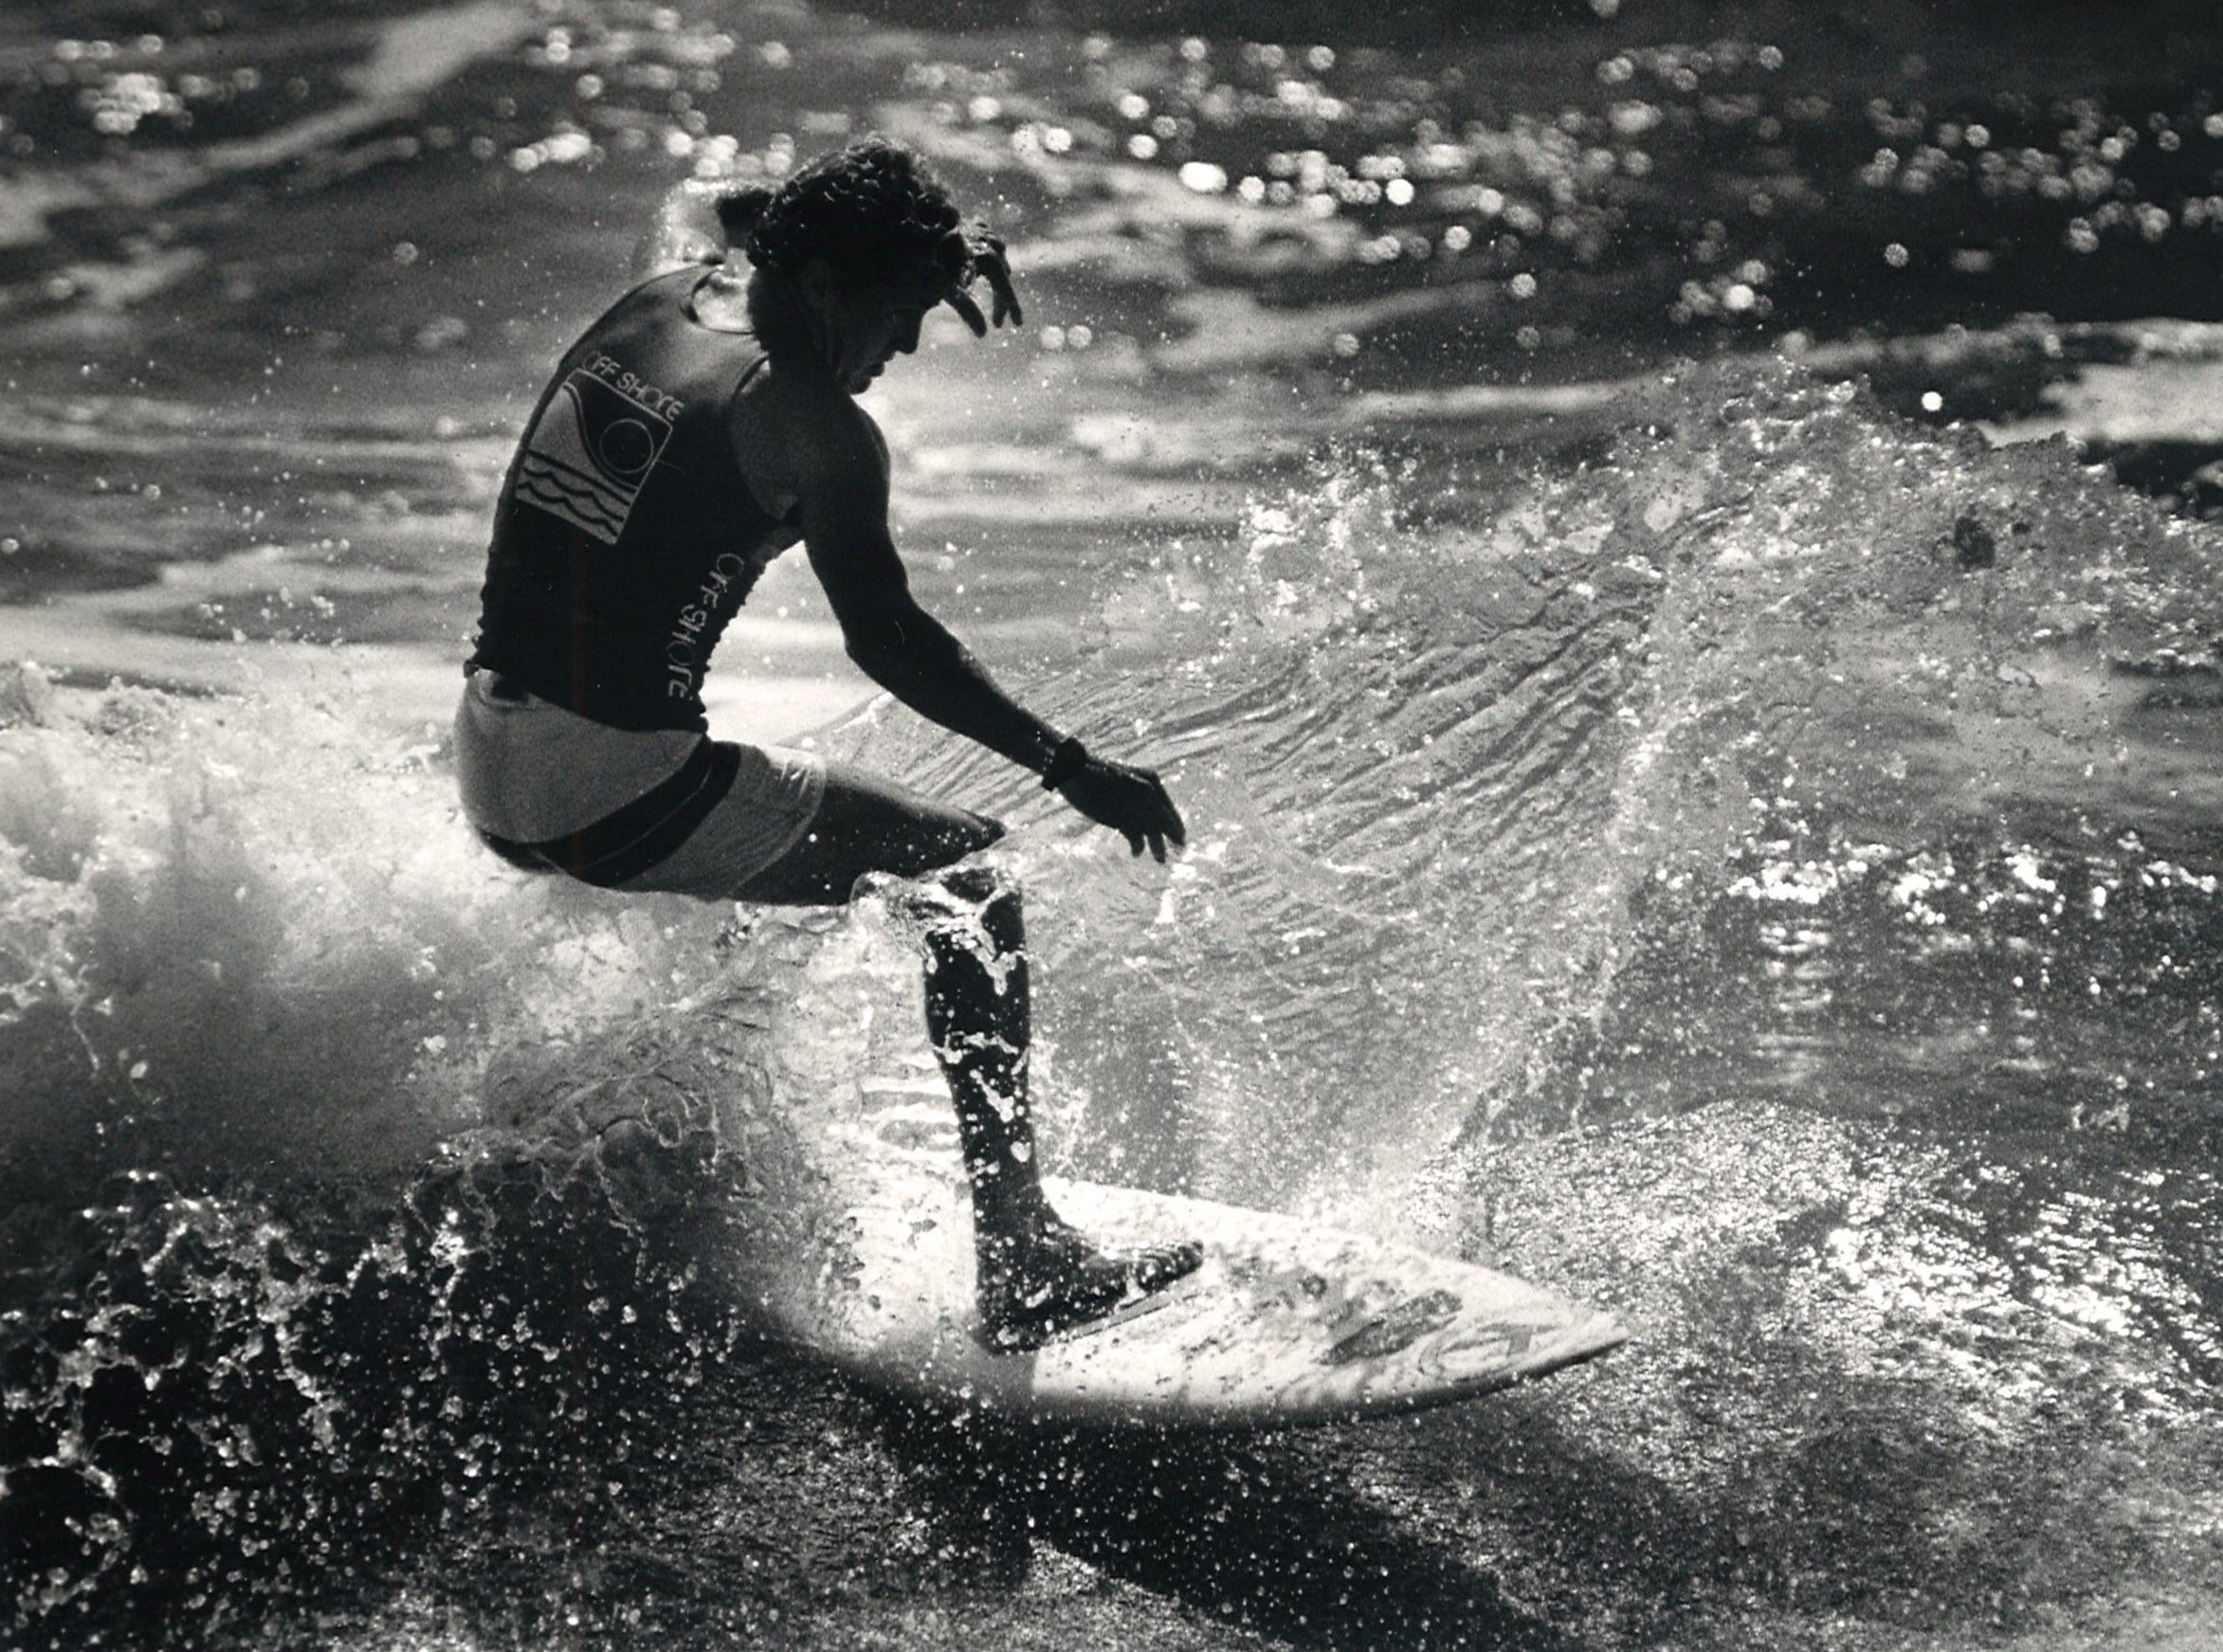 Pro surfer Matt Kechele of Cocoa Beach, Florida during his first heat at the Off Shore/Raisins Texas Pro Am Surfing Classic on April 18, 1987.